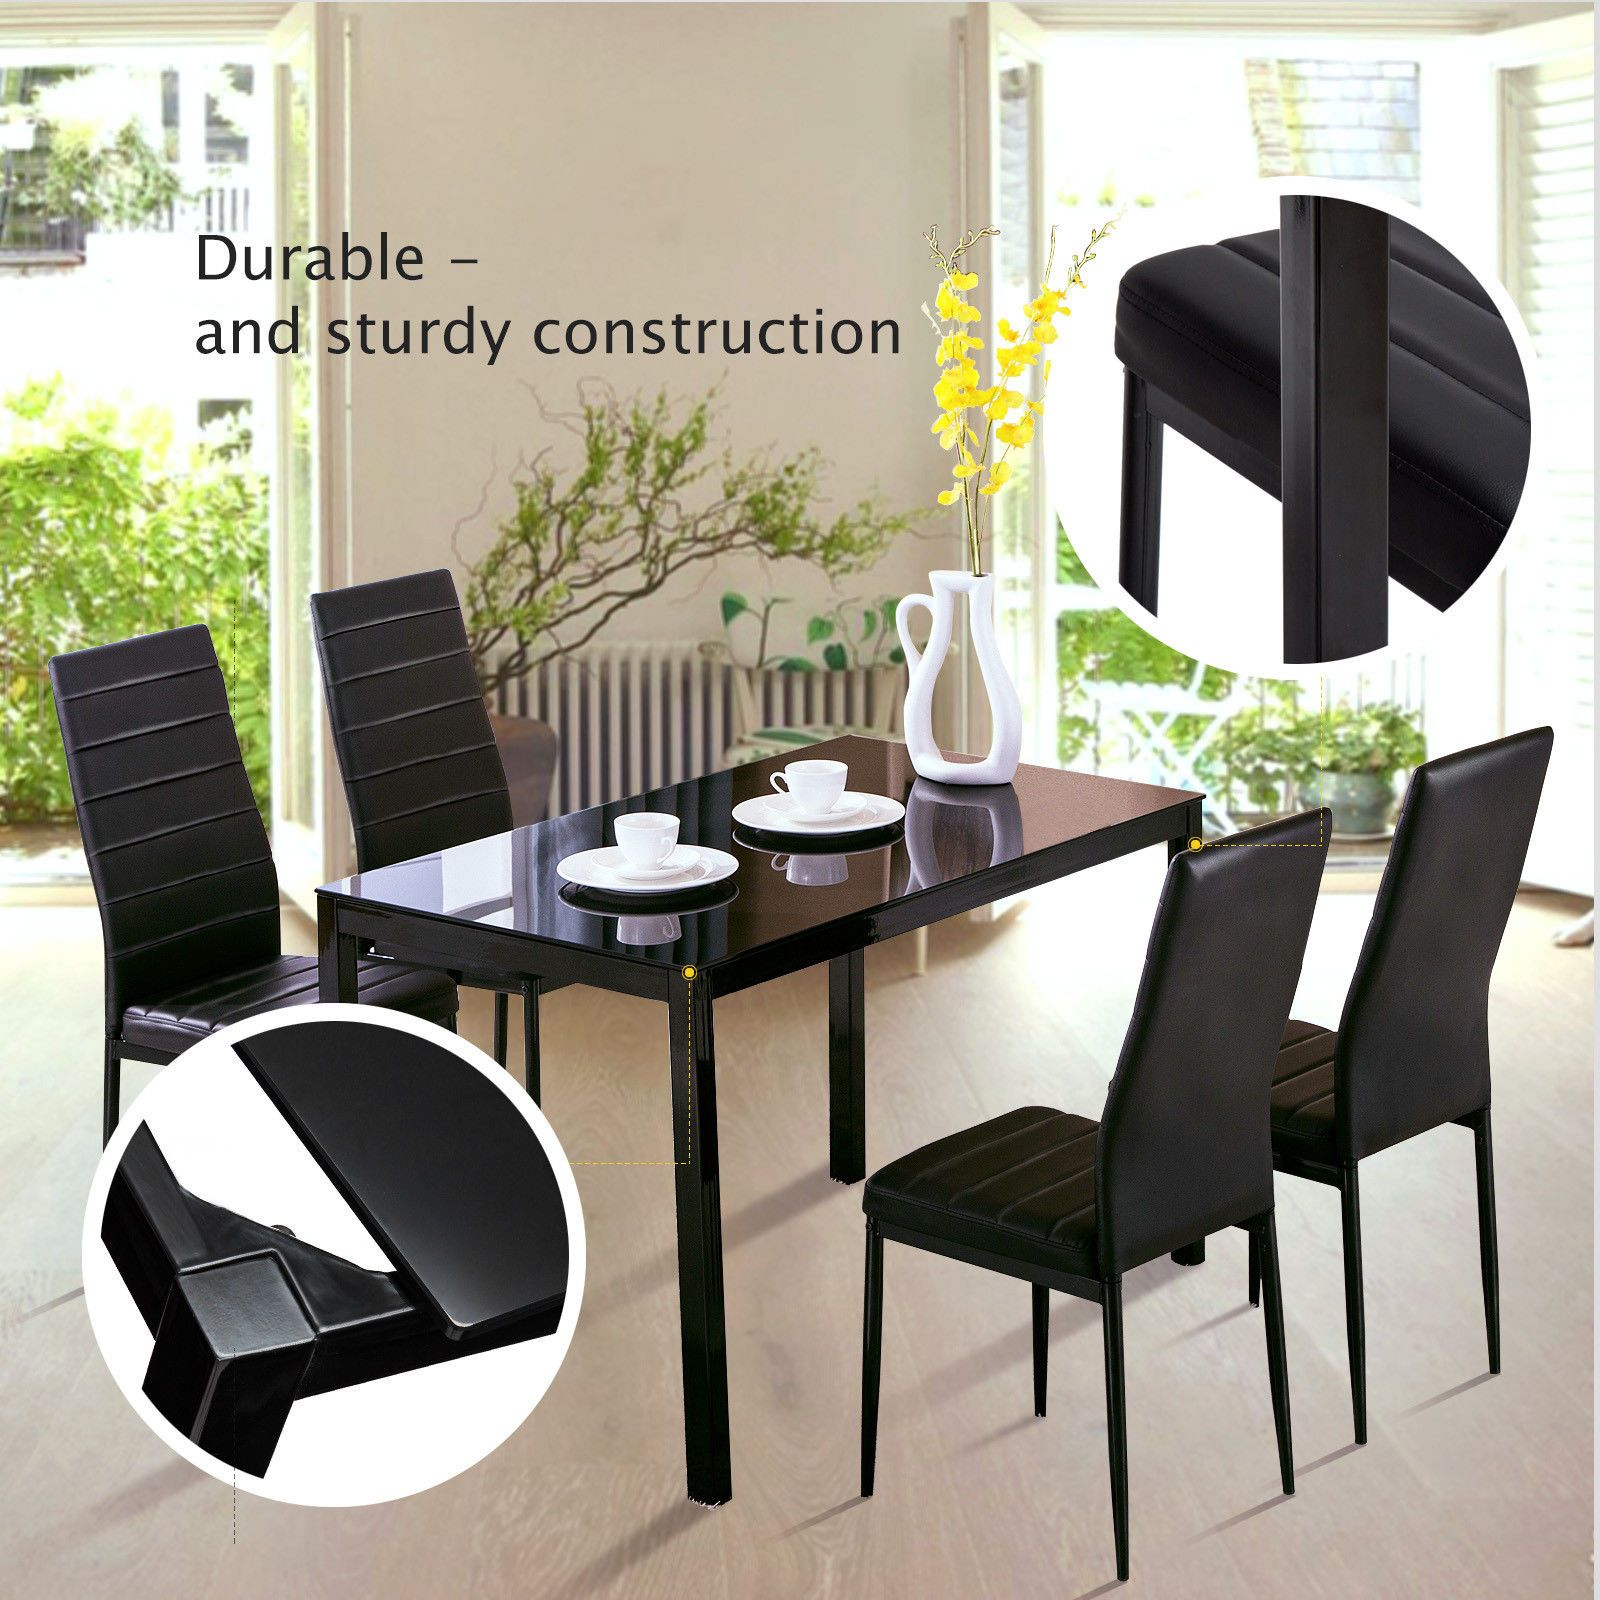 5 Piece Dining Table Set 4 Chairs Glass Metal Kitchen Room Breakfast Furniture Dining Table Setting Dinning Room Tables Table